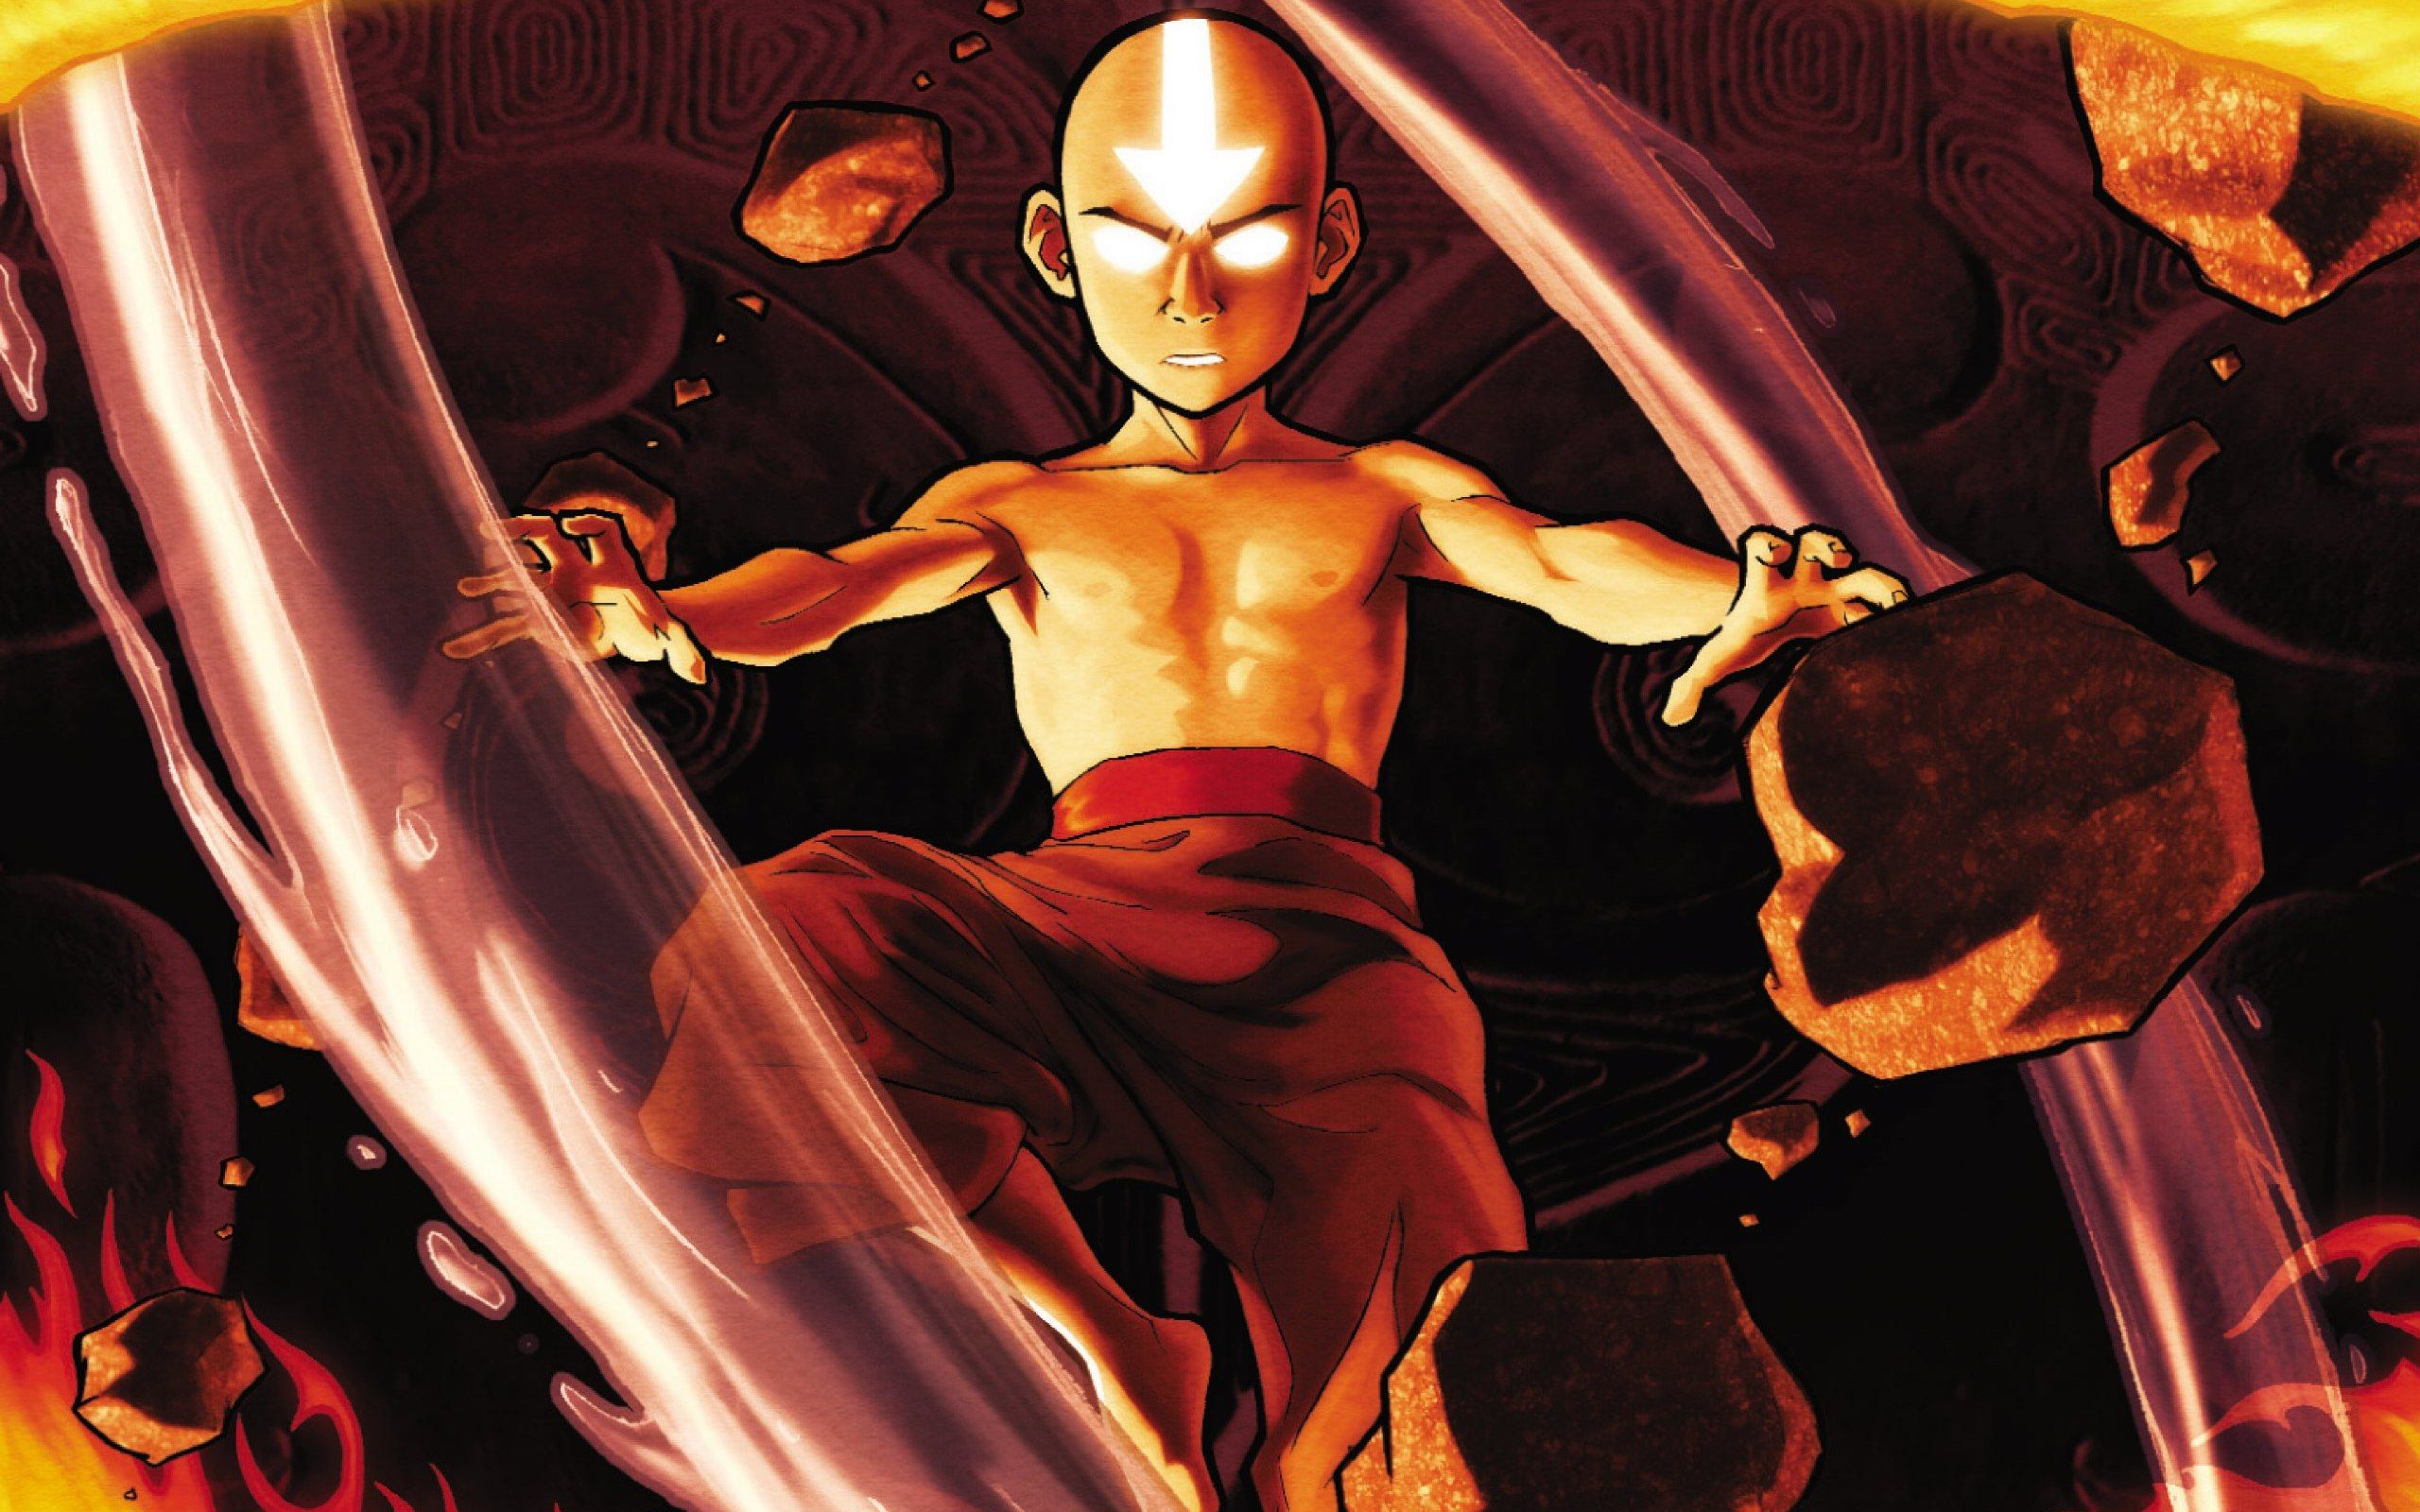 Aang In The Avatar State Avatar The Last Airbender Avatar Aang The Last Airbender